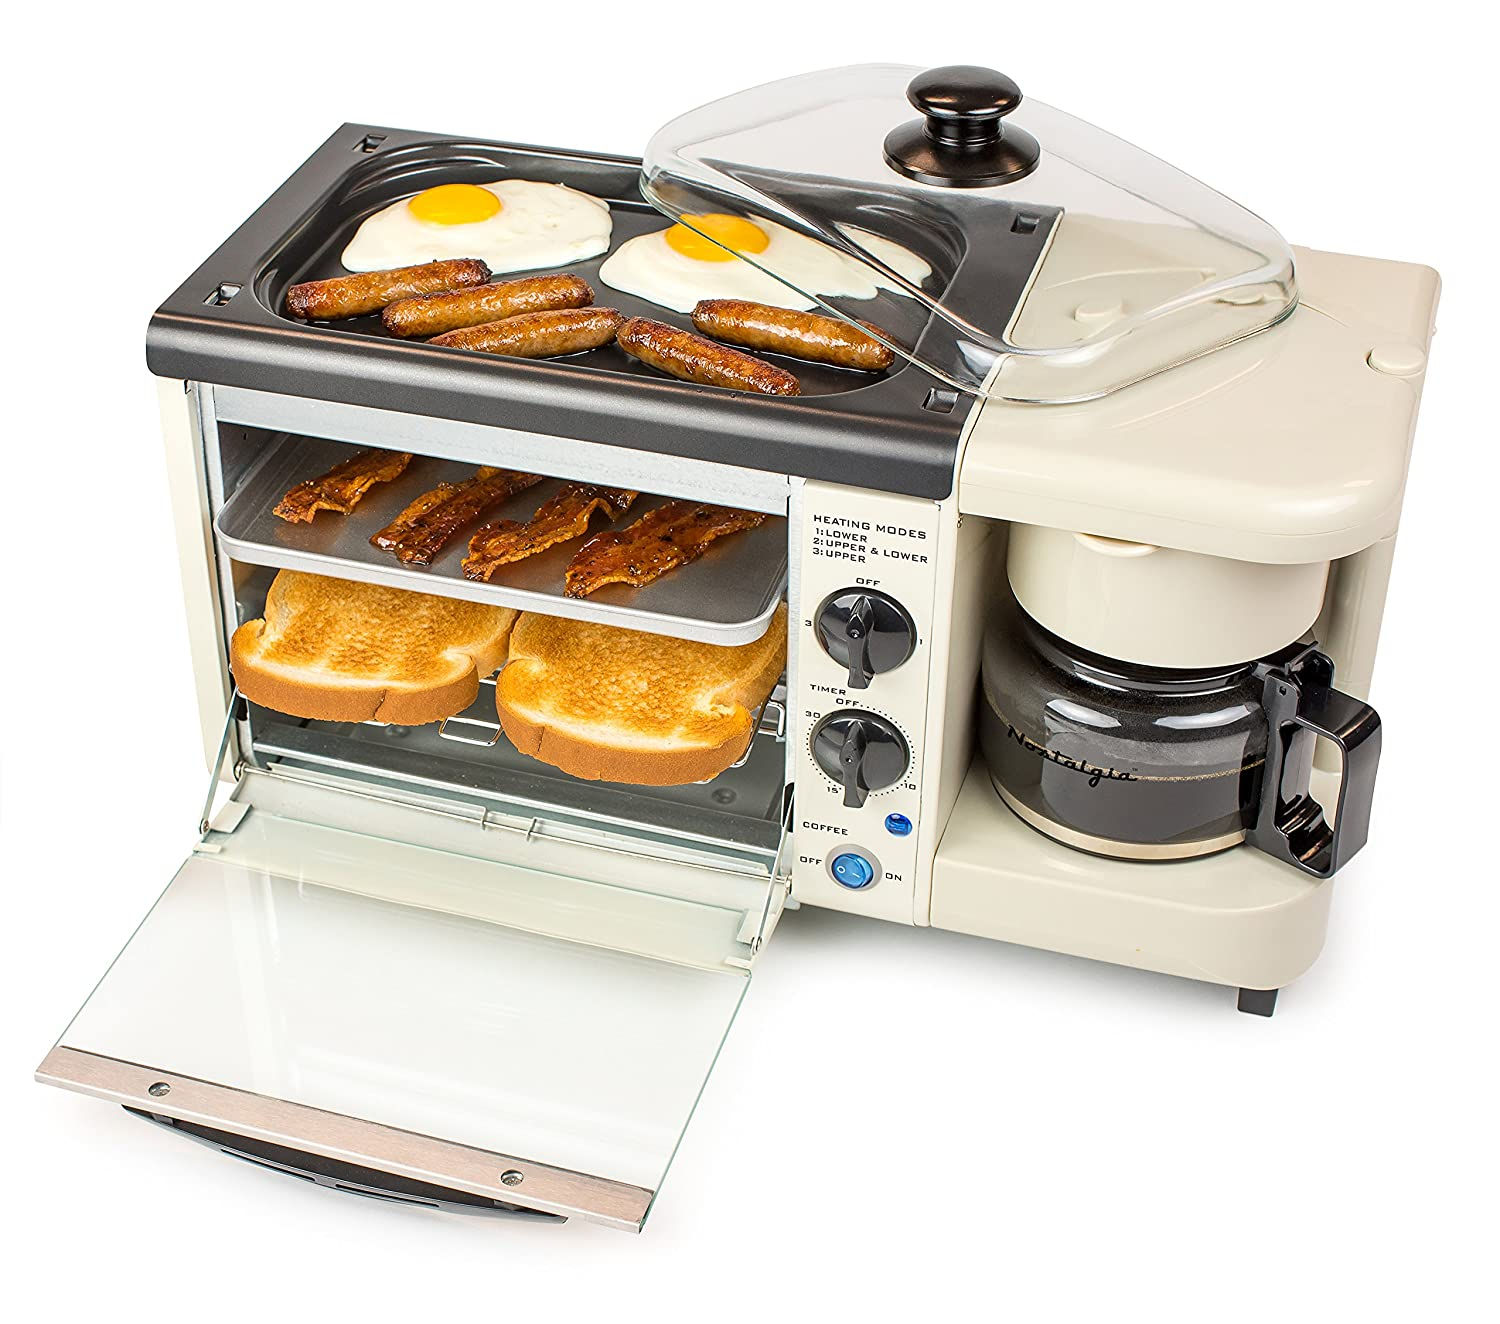 Nostalgia Bset100Bc 3-In-1 Toaster Ovens 2 Slice Bisque